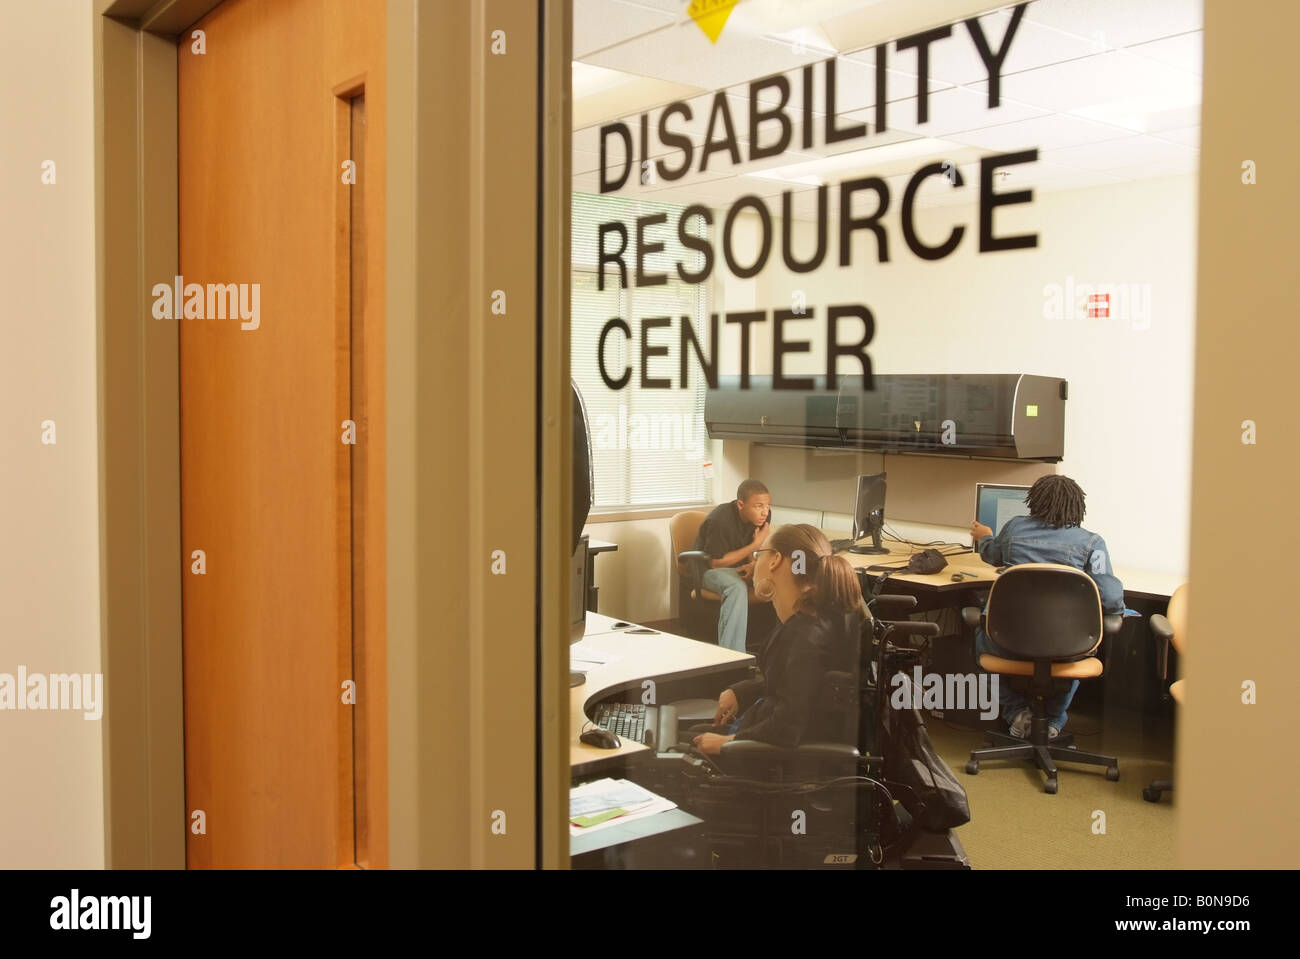 Disability access resources center at Bowie State University Maryland USA - Stock Image